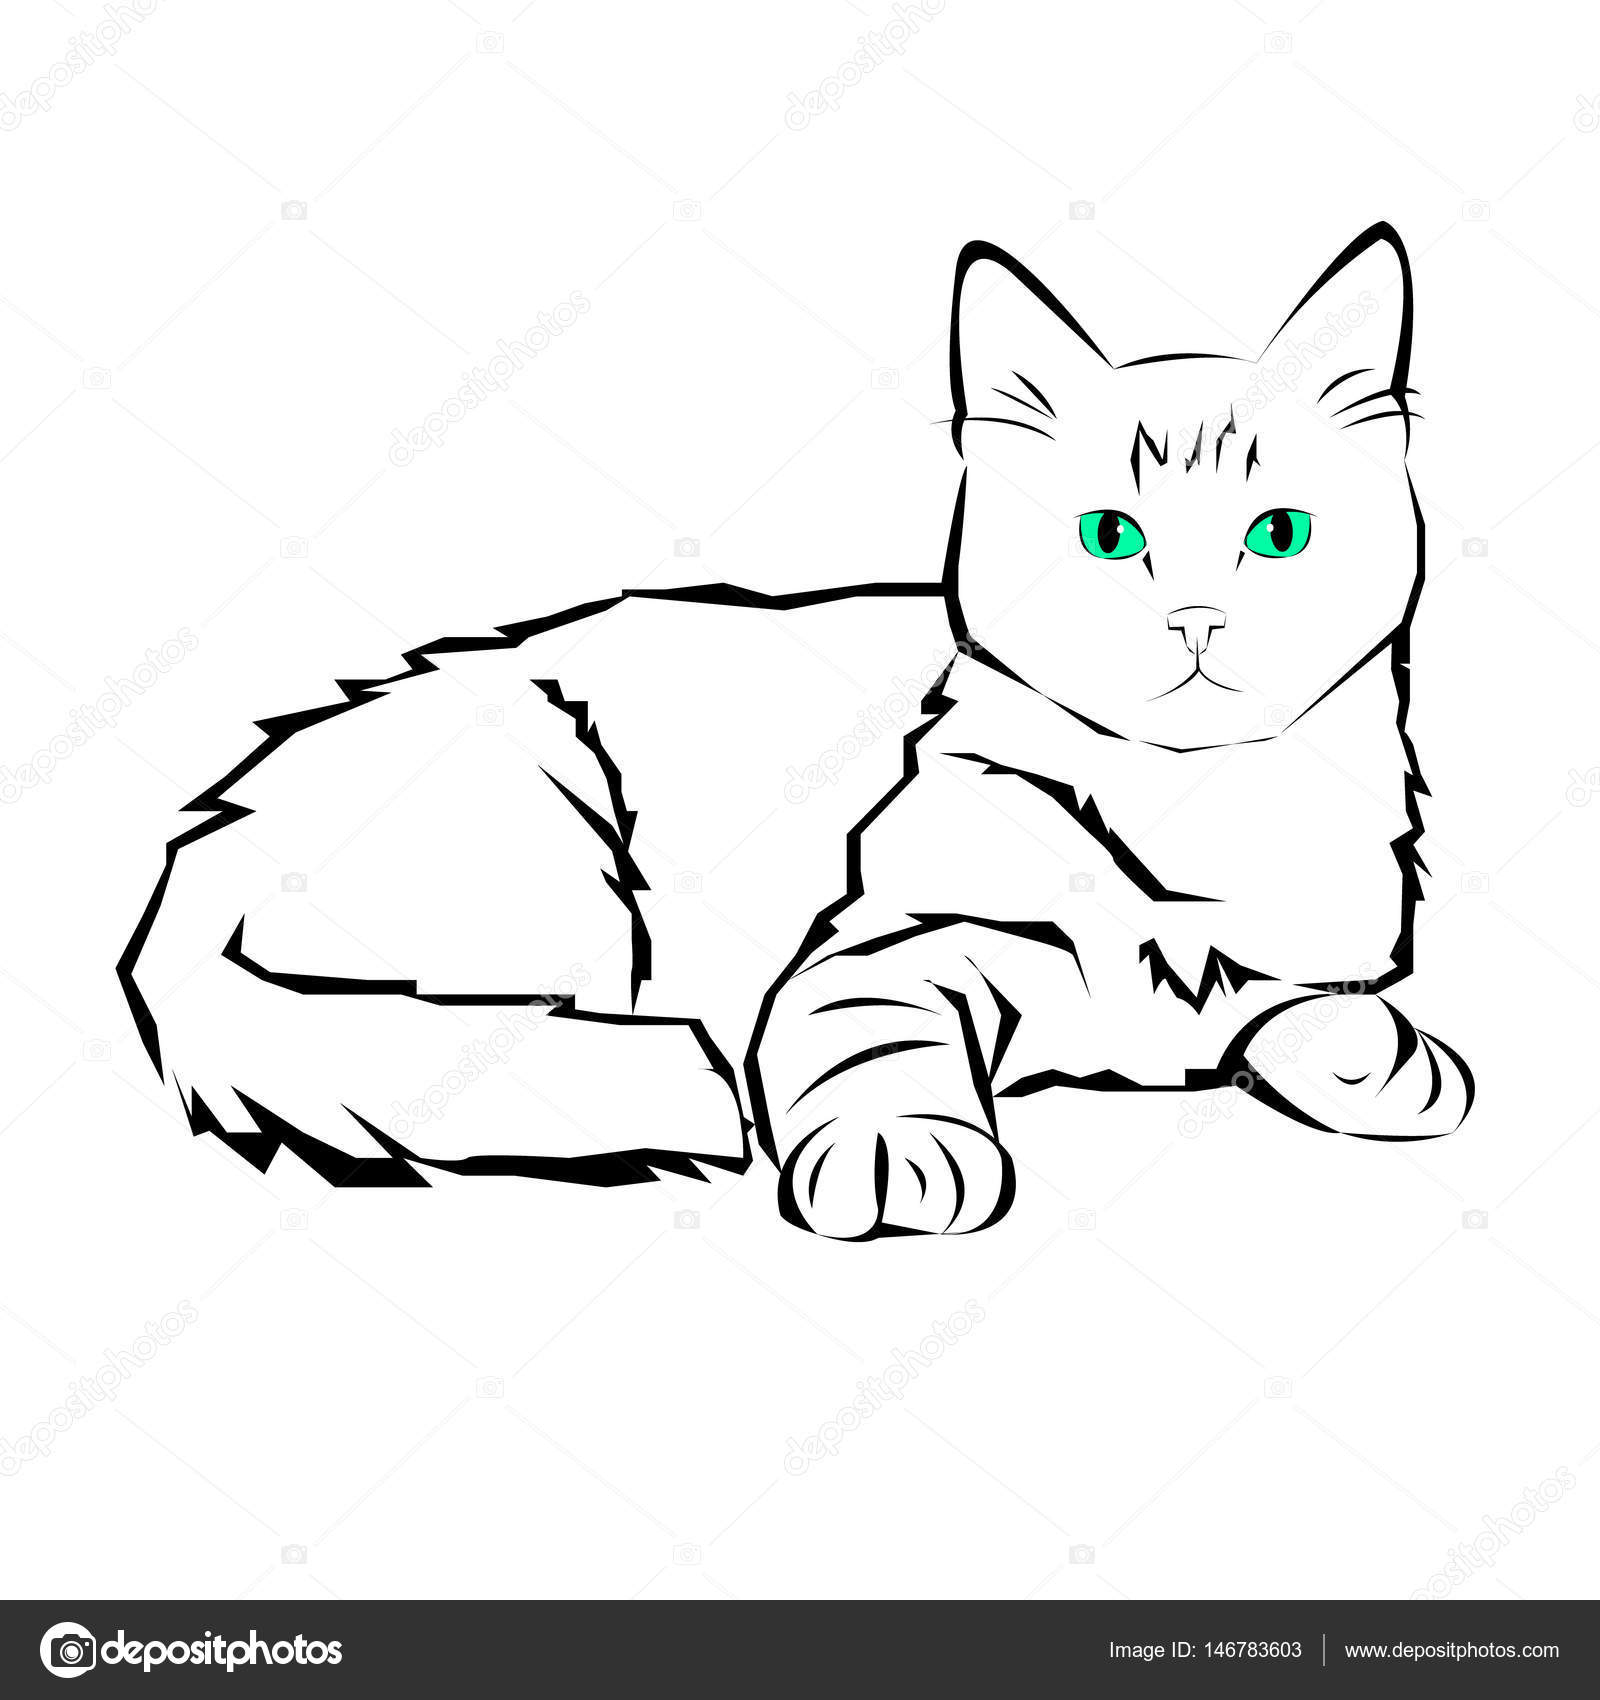 Contour Line Drawing Of A Cat : Cat animal contour drawing creative blue image